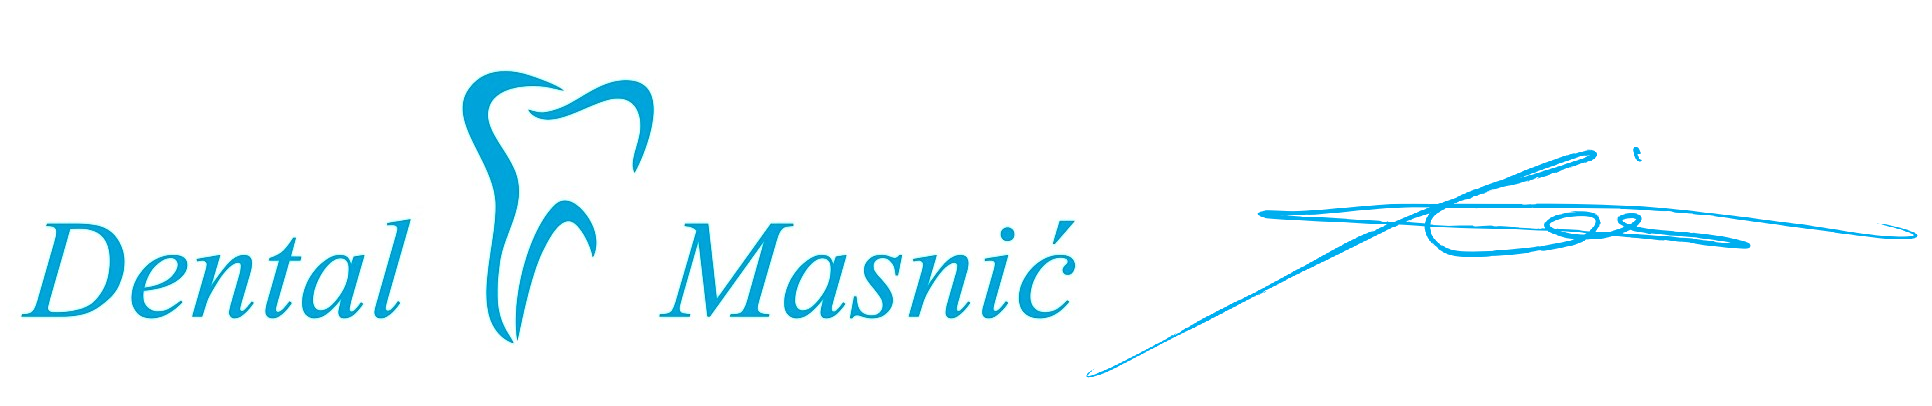 Dental Masnic